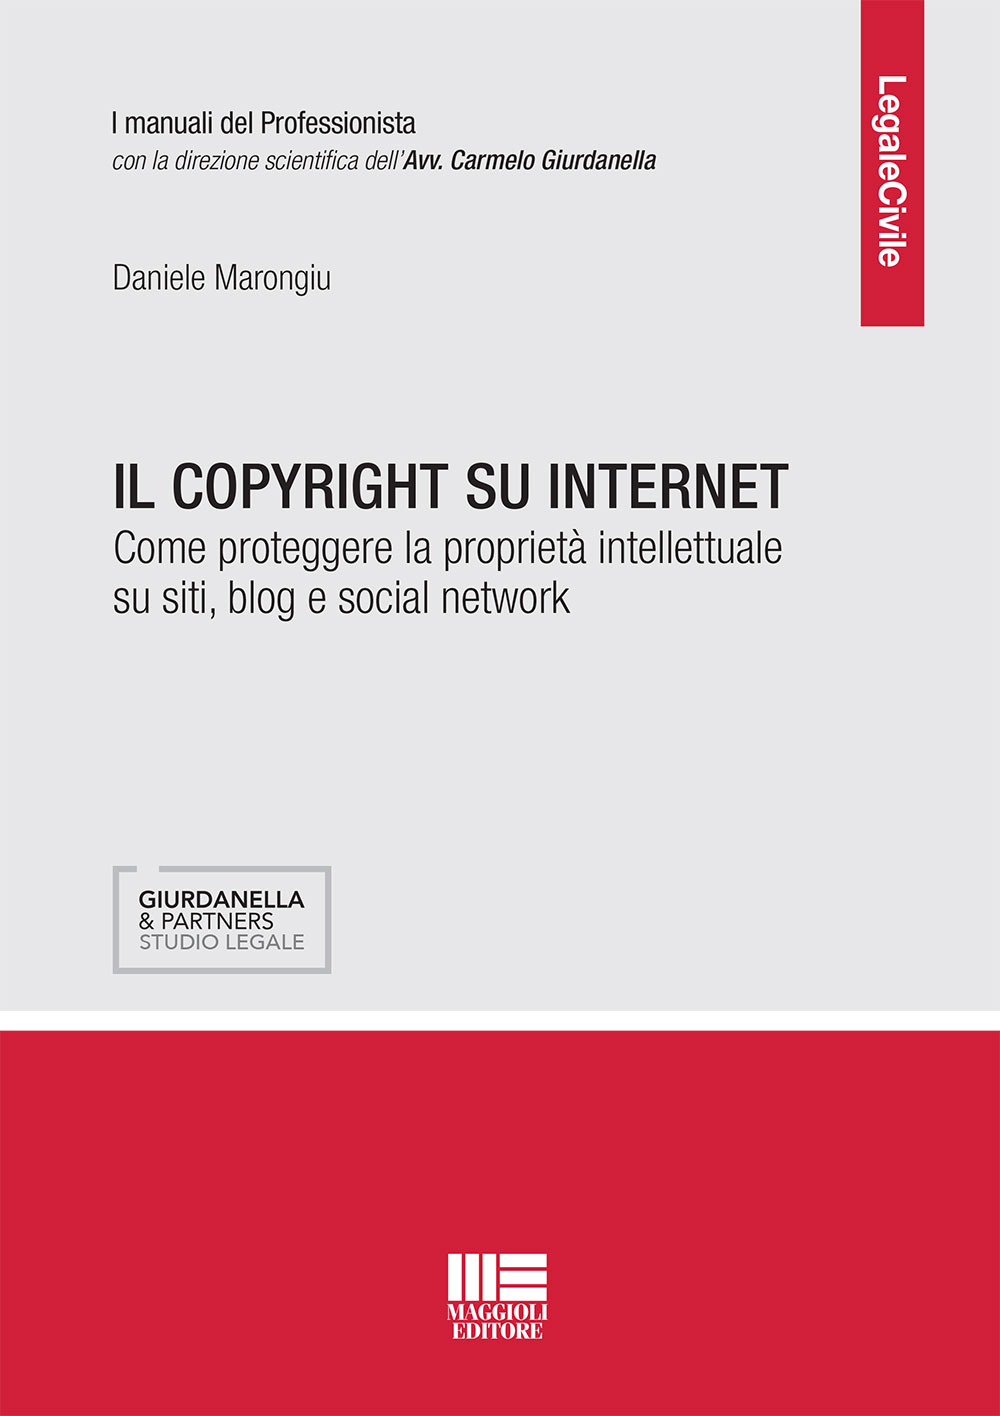 Il copyright su internet - Libro di carta